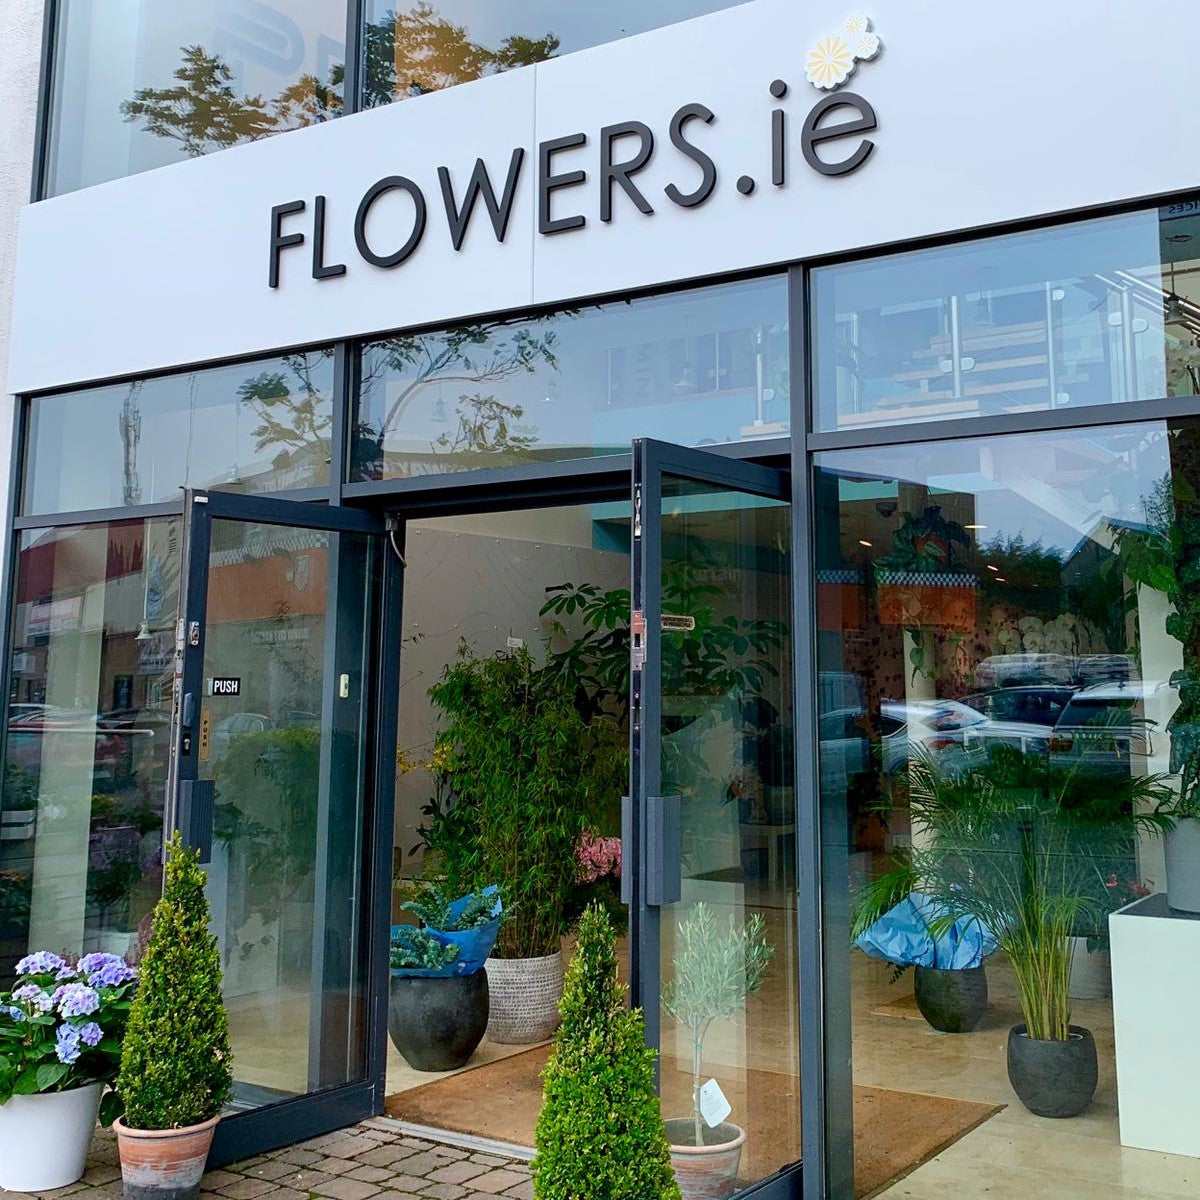 Flowers.ie store in Galway